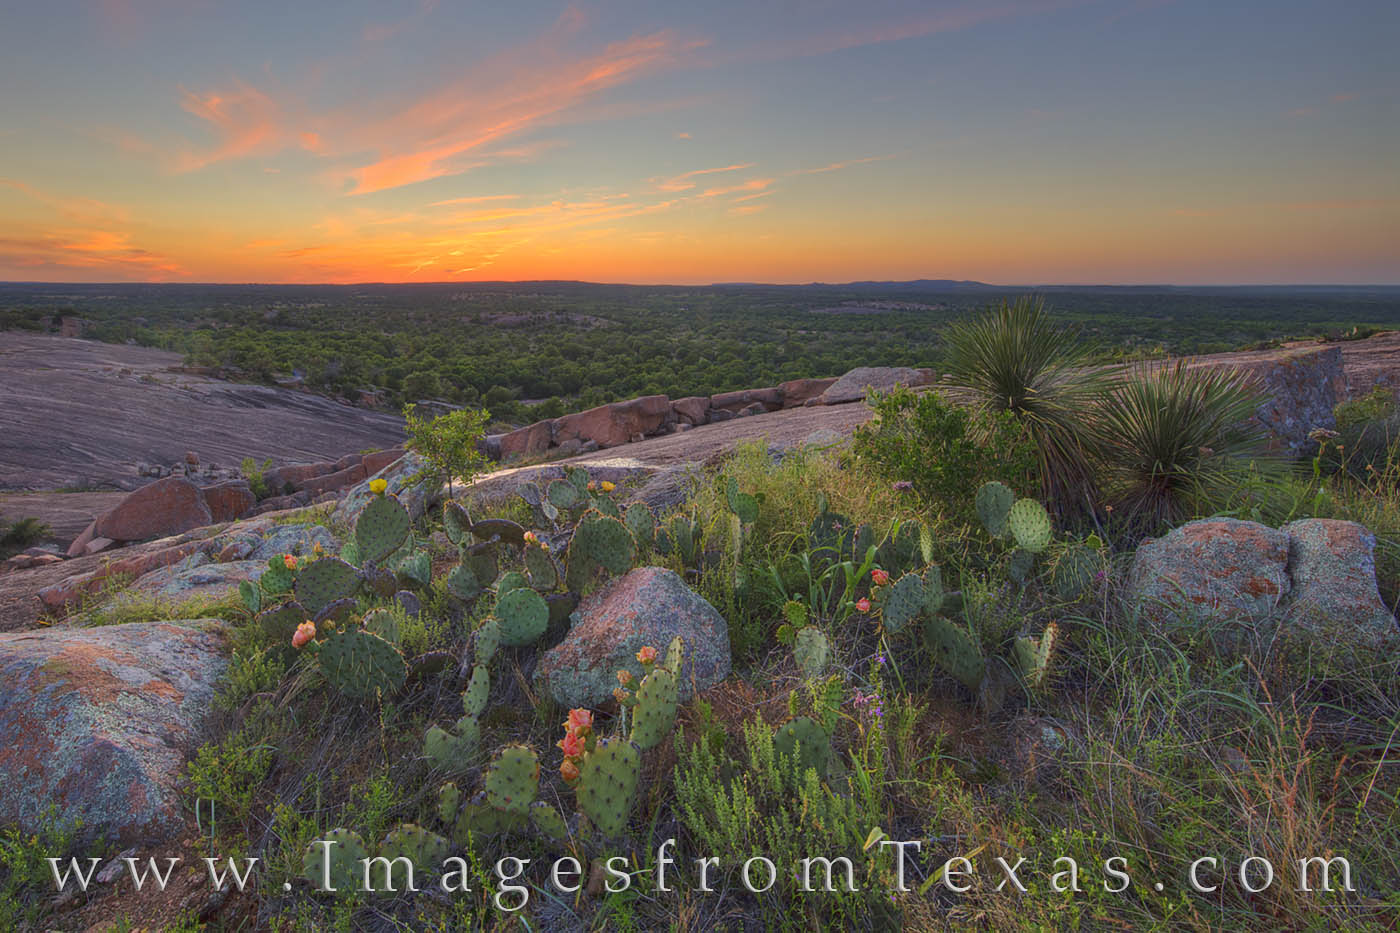 On a very still evening one of the Texas Hill Country's iconic locations, Enchanted Rock, the evening sky lights ends the day...